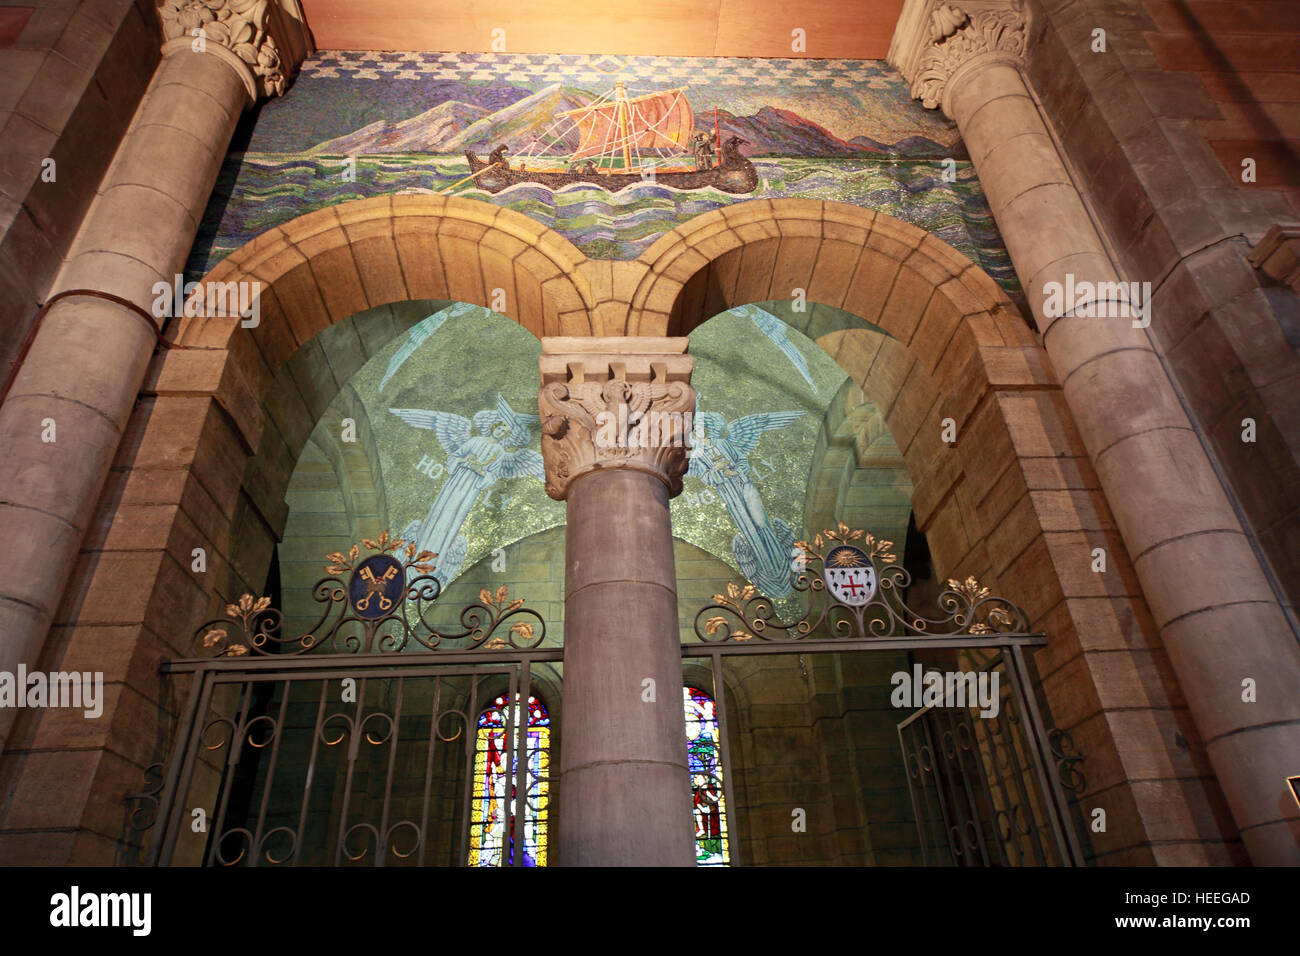 Inside,architecture,building,stone,arch,holy,St Annes,Belfast Cathedral,saint,Annes,ship,on,archway,gate,arch,archway gate,artwork,boat,religion,protestant,maritime,GoTonySmith,@HotpixUK,Tony,Smith,UK,GB,Great,Britain,United,Kingdom,Irish,British,Ireland,problem,with,problem with,issue with,NI,Northern,Northern Ireland,Belfast,City,Centre,Art,Artists,the,troubles,The Troubles,Good Friday Agreement,Peace,honour,painting,wall,walls,tribute,republicanism,Fight,Justice,West,Beal,feirste,martyrs,social,tour,tourism,tourists,urban,six,counties,6,backdrop,county,Antrim,Quarter,Buy Pictures of,Buy Images Of,Images of,Stock Images,Tony Smith,United Kingdom,Great Britain,British Isles